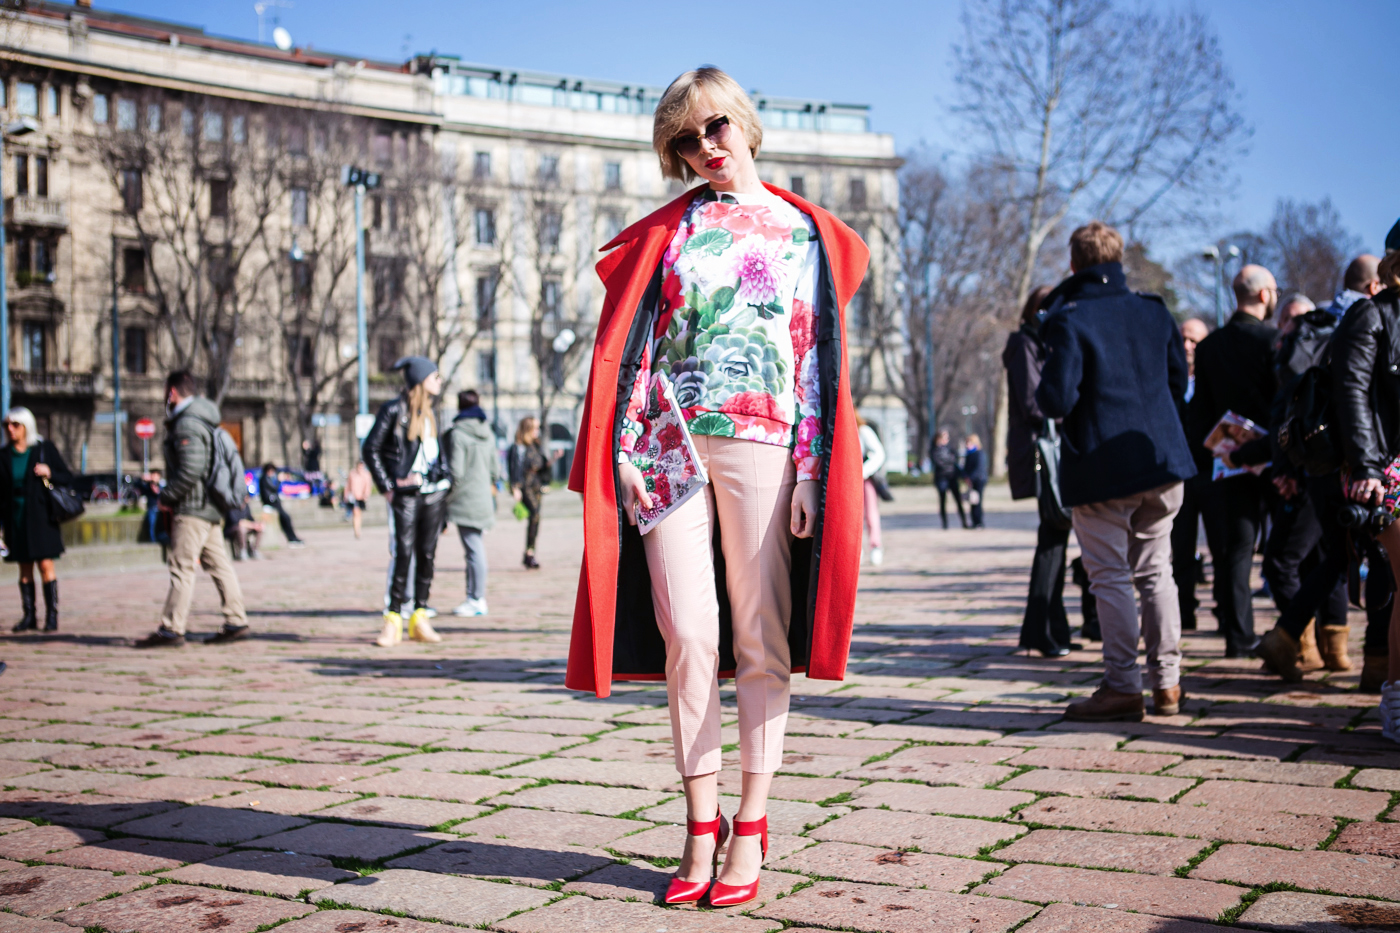 thecablook darya kamalova russian italian fashion blogger blonde short hair pixie cut street style whats inside you by eleonora carisi outfit asos long red coat steven heels shopbop milan fashion week aw14 15 arco della pace just cavalli-5 copy